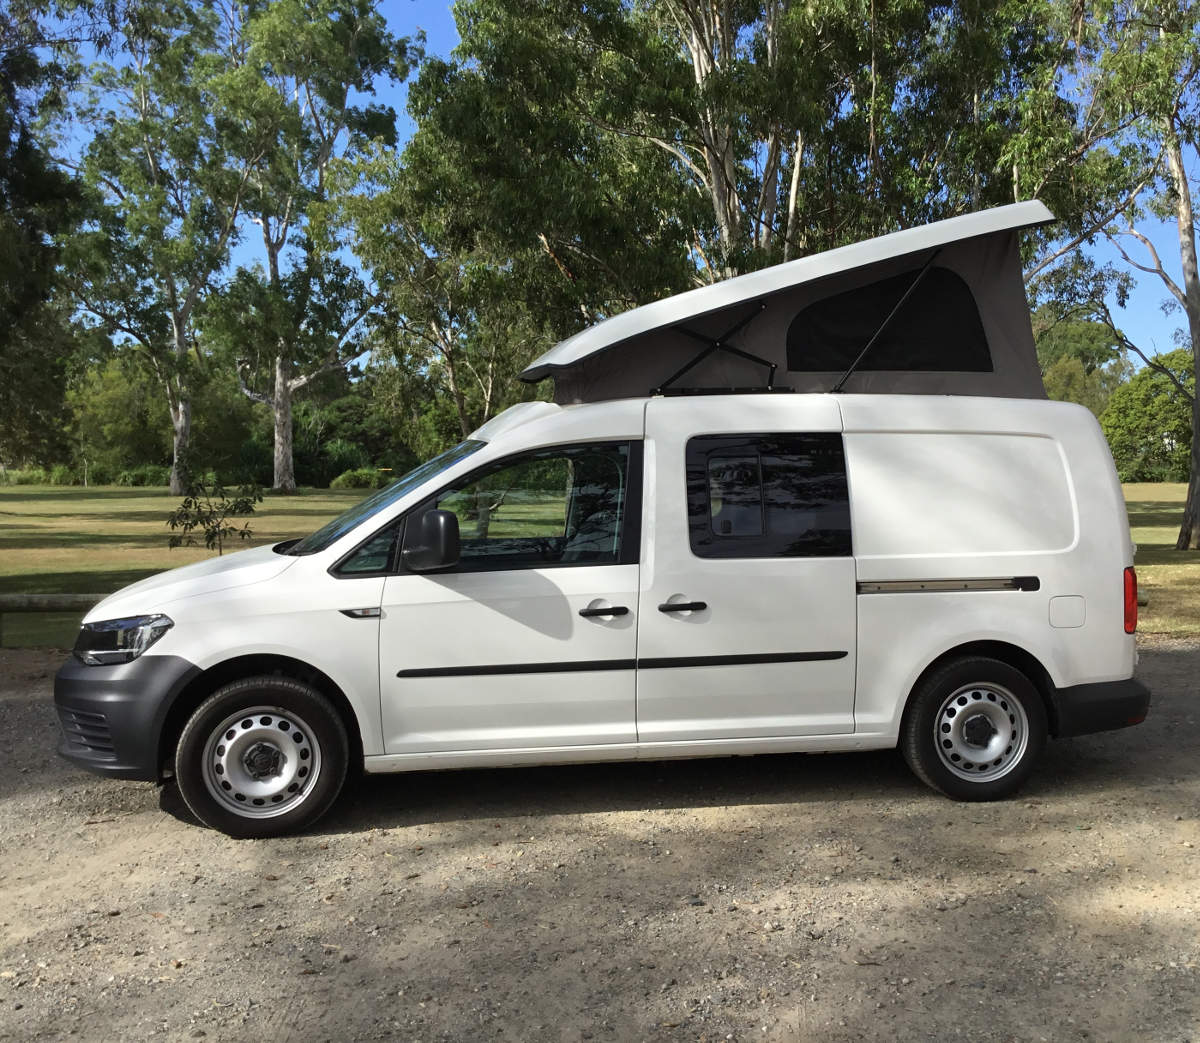 VW Caddy roof - Southern Spirt Campervans - true custom build RV's